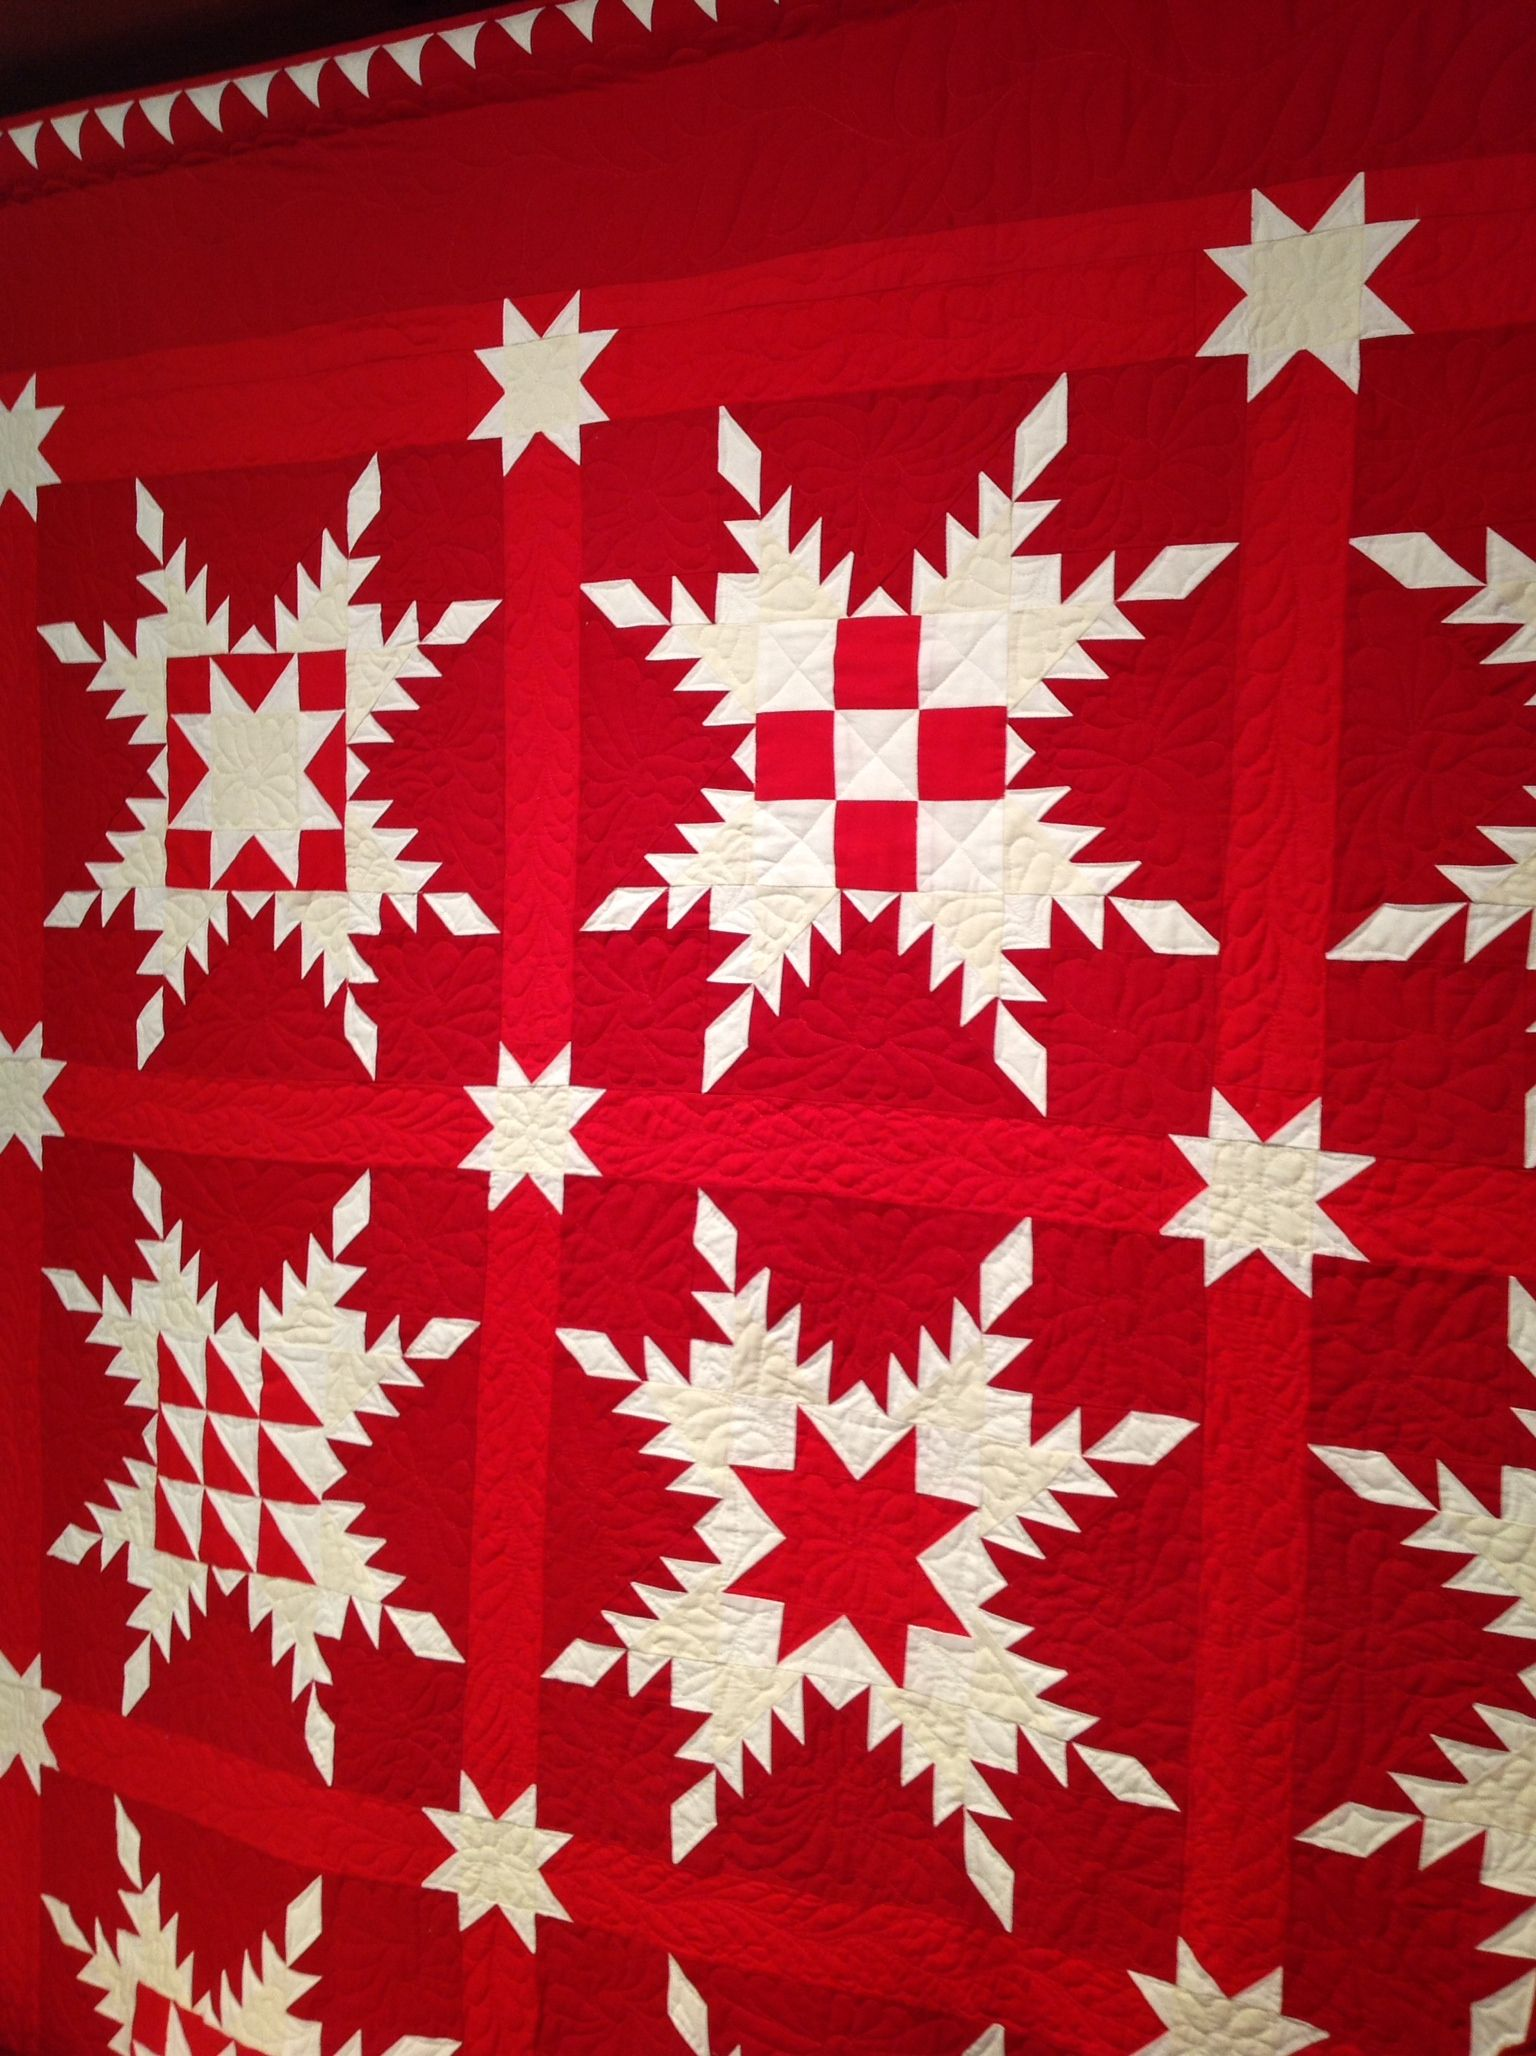 Maxine's Star of Chamblee Quilt by Marsha McClosky.